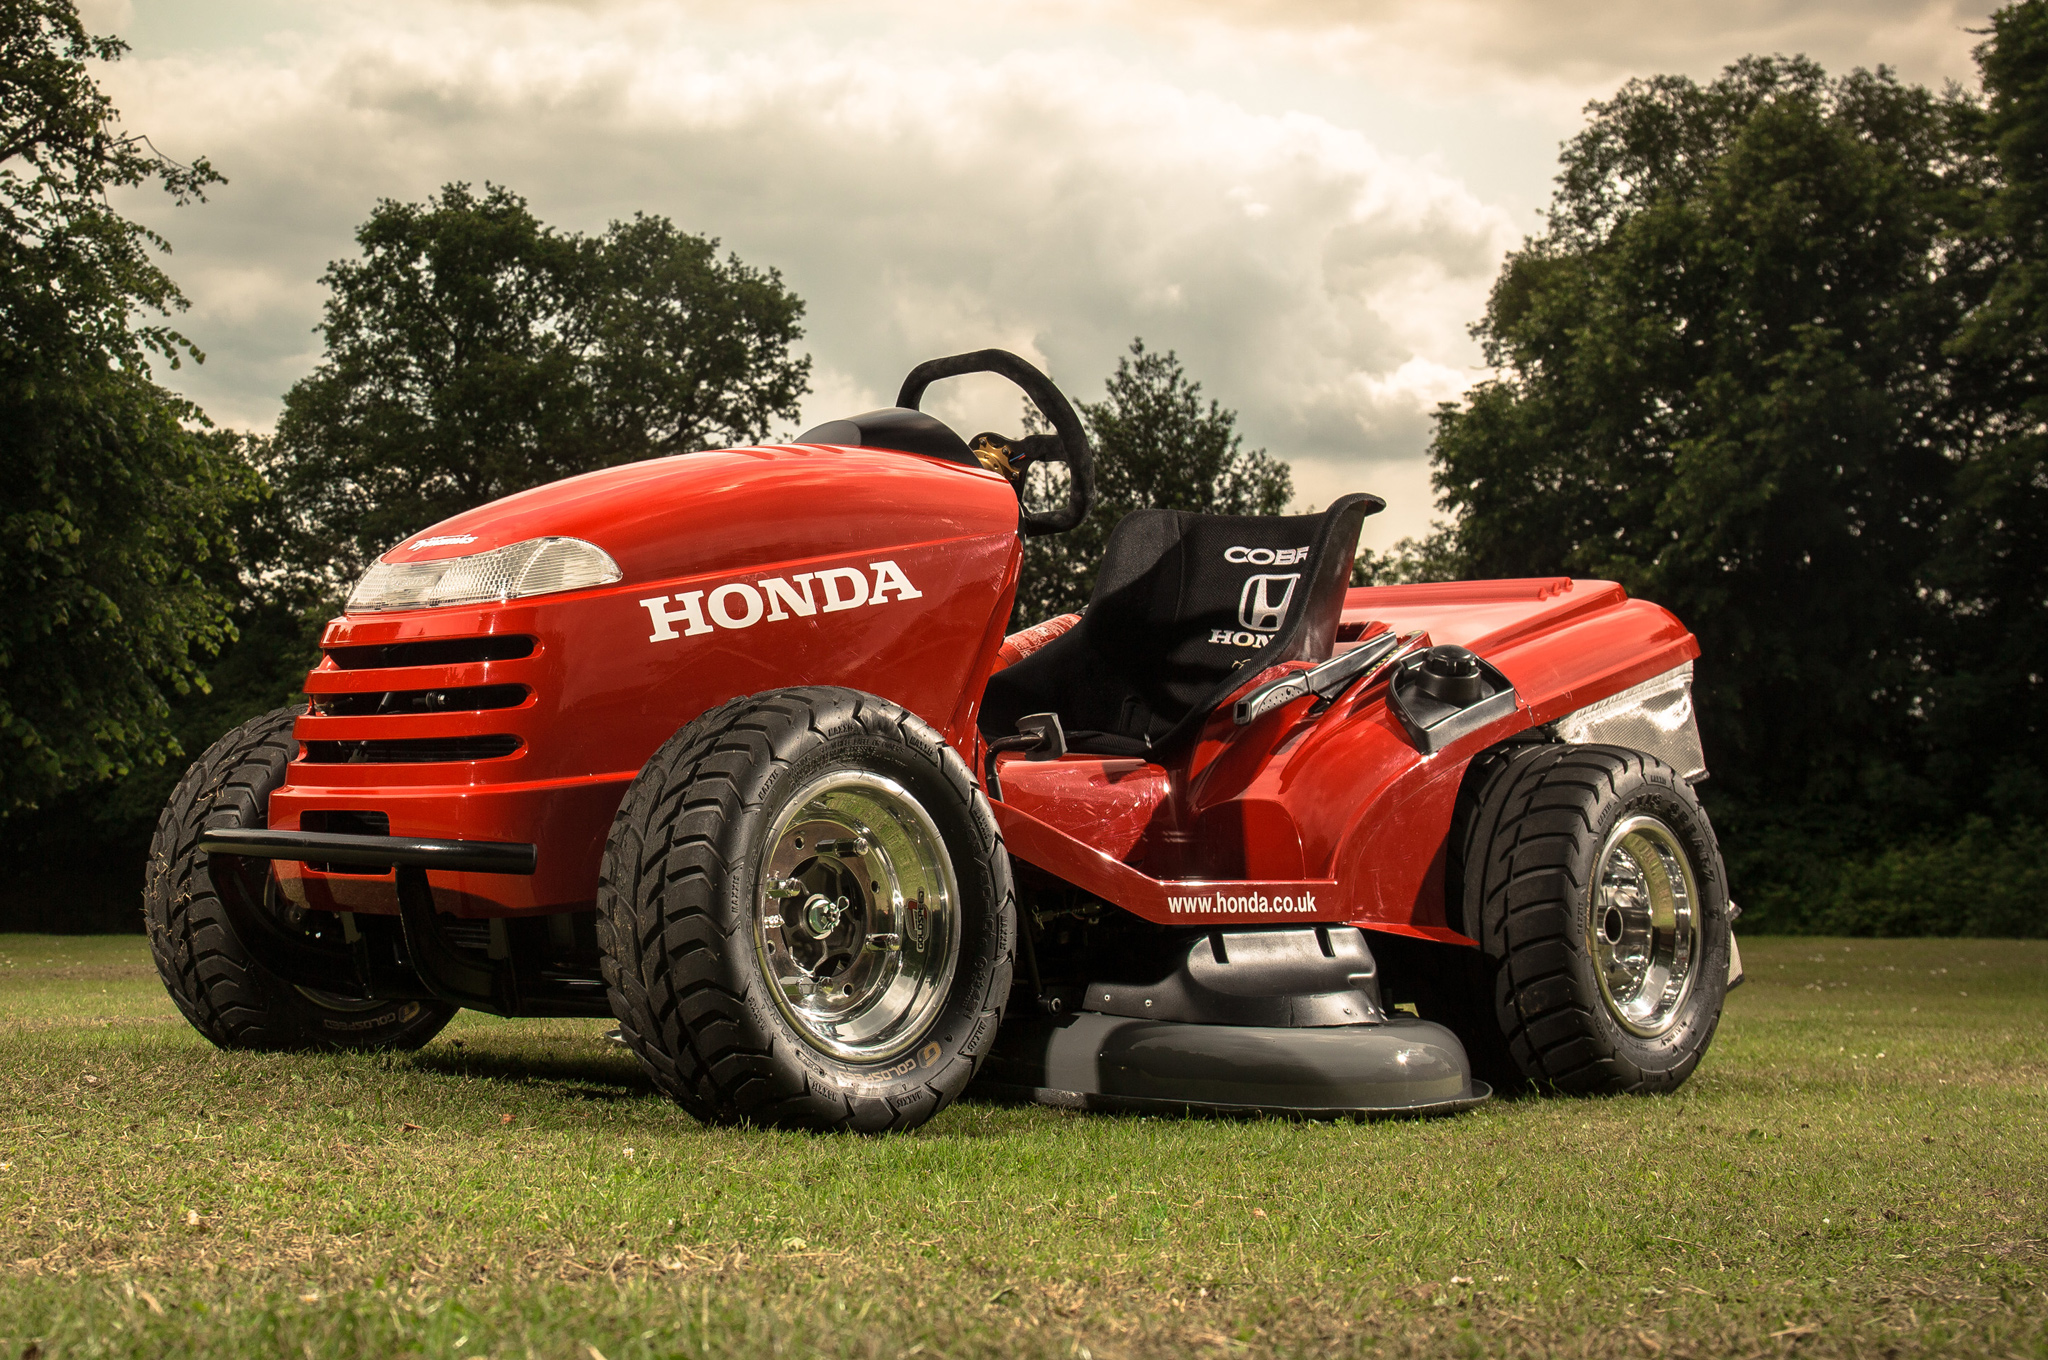 Flash Grass 109 HP Honda Mower Goes 0 60 Mph In 4 Seconds W Video